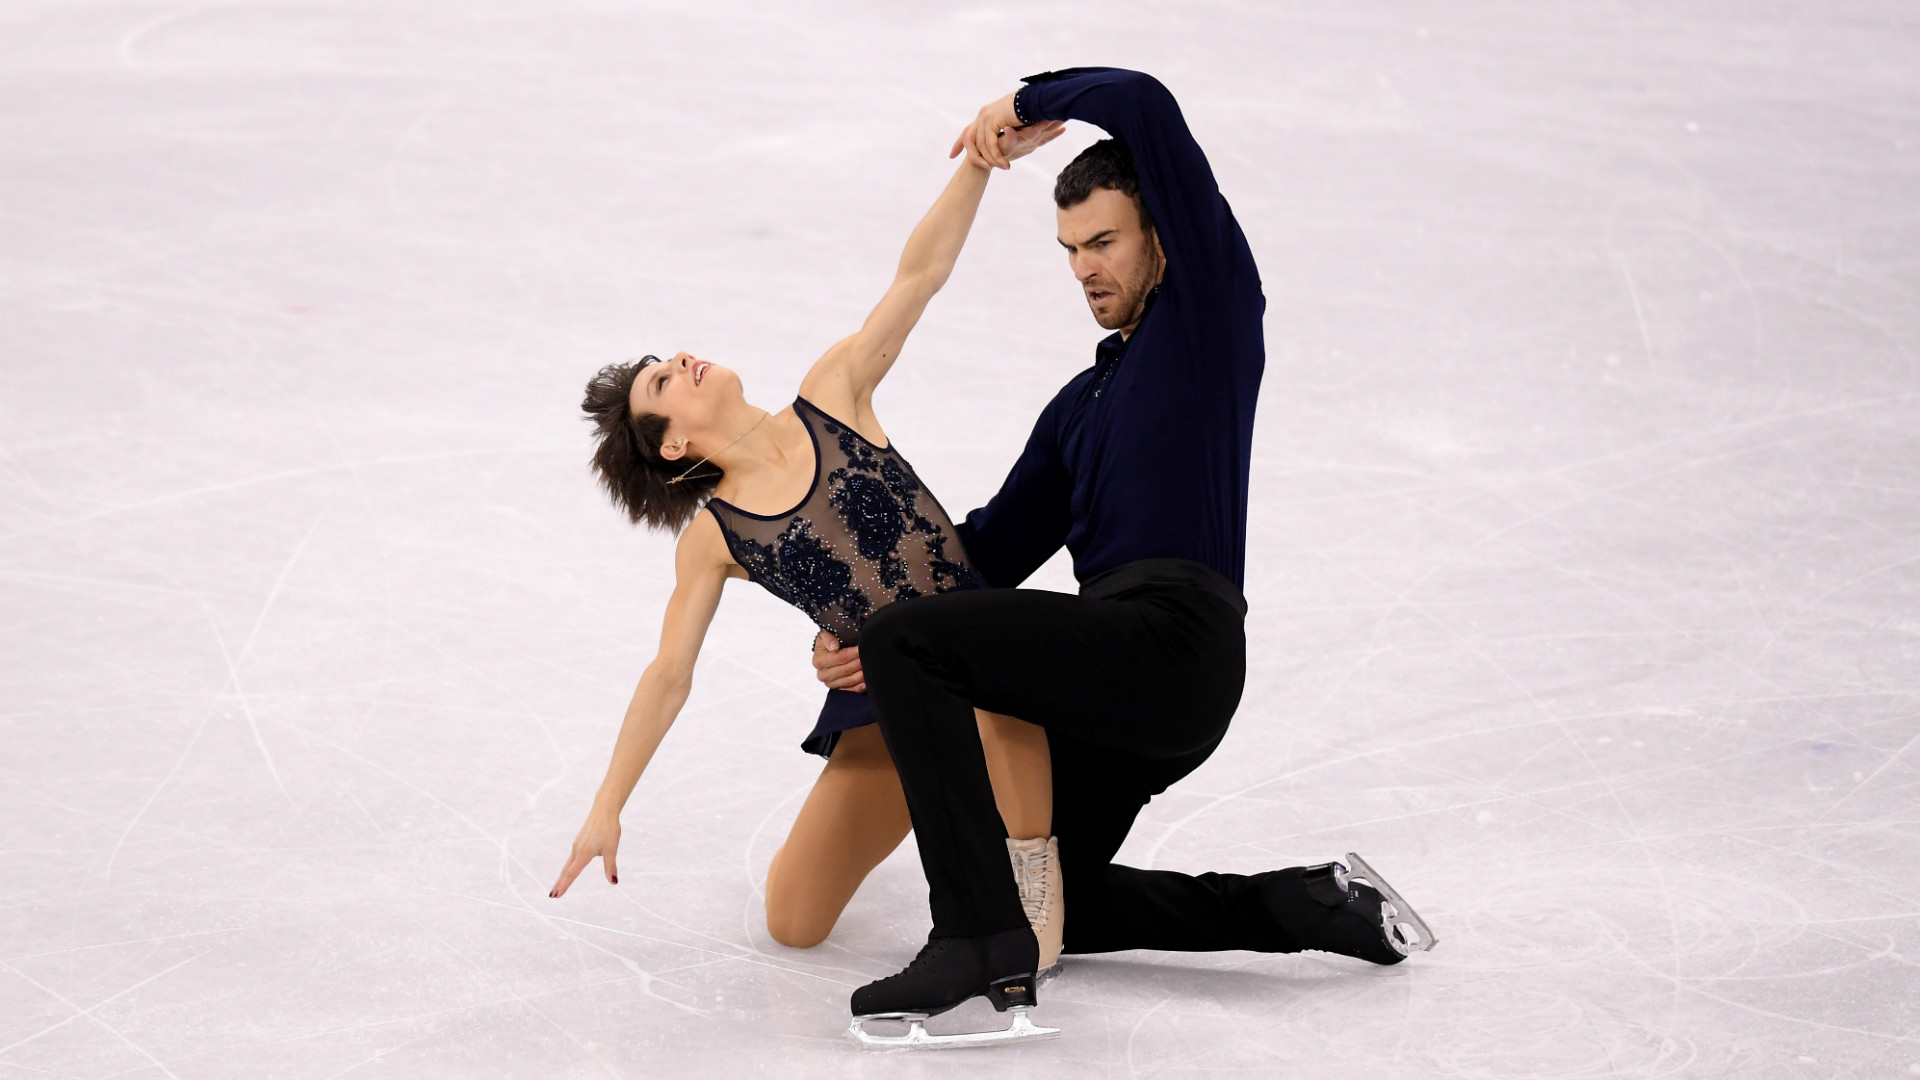 Openly Gay Figure Skaters Eric Radford, Adam Rippon Medal At Winter Olympics